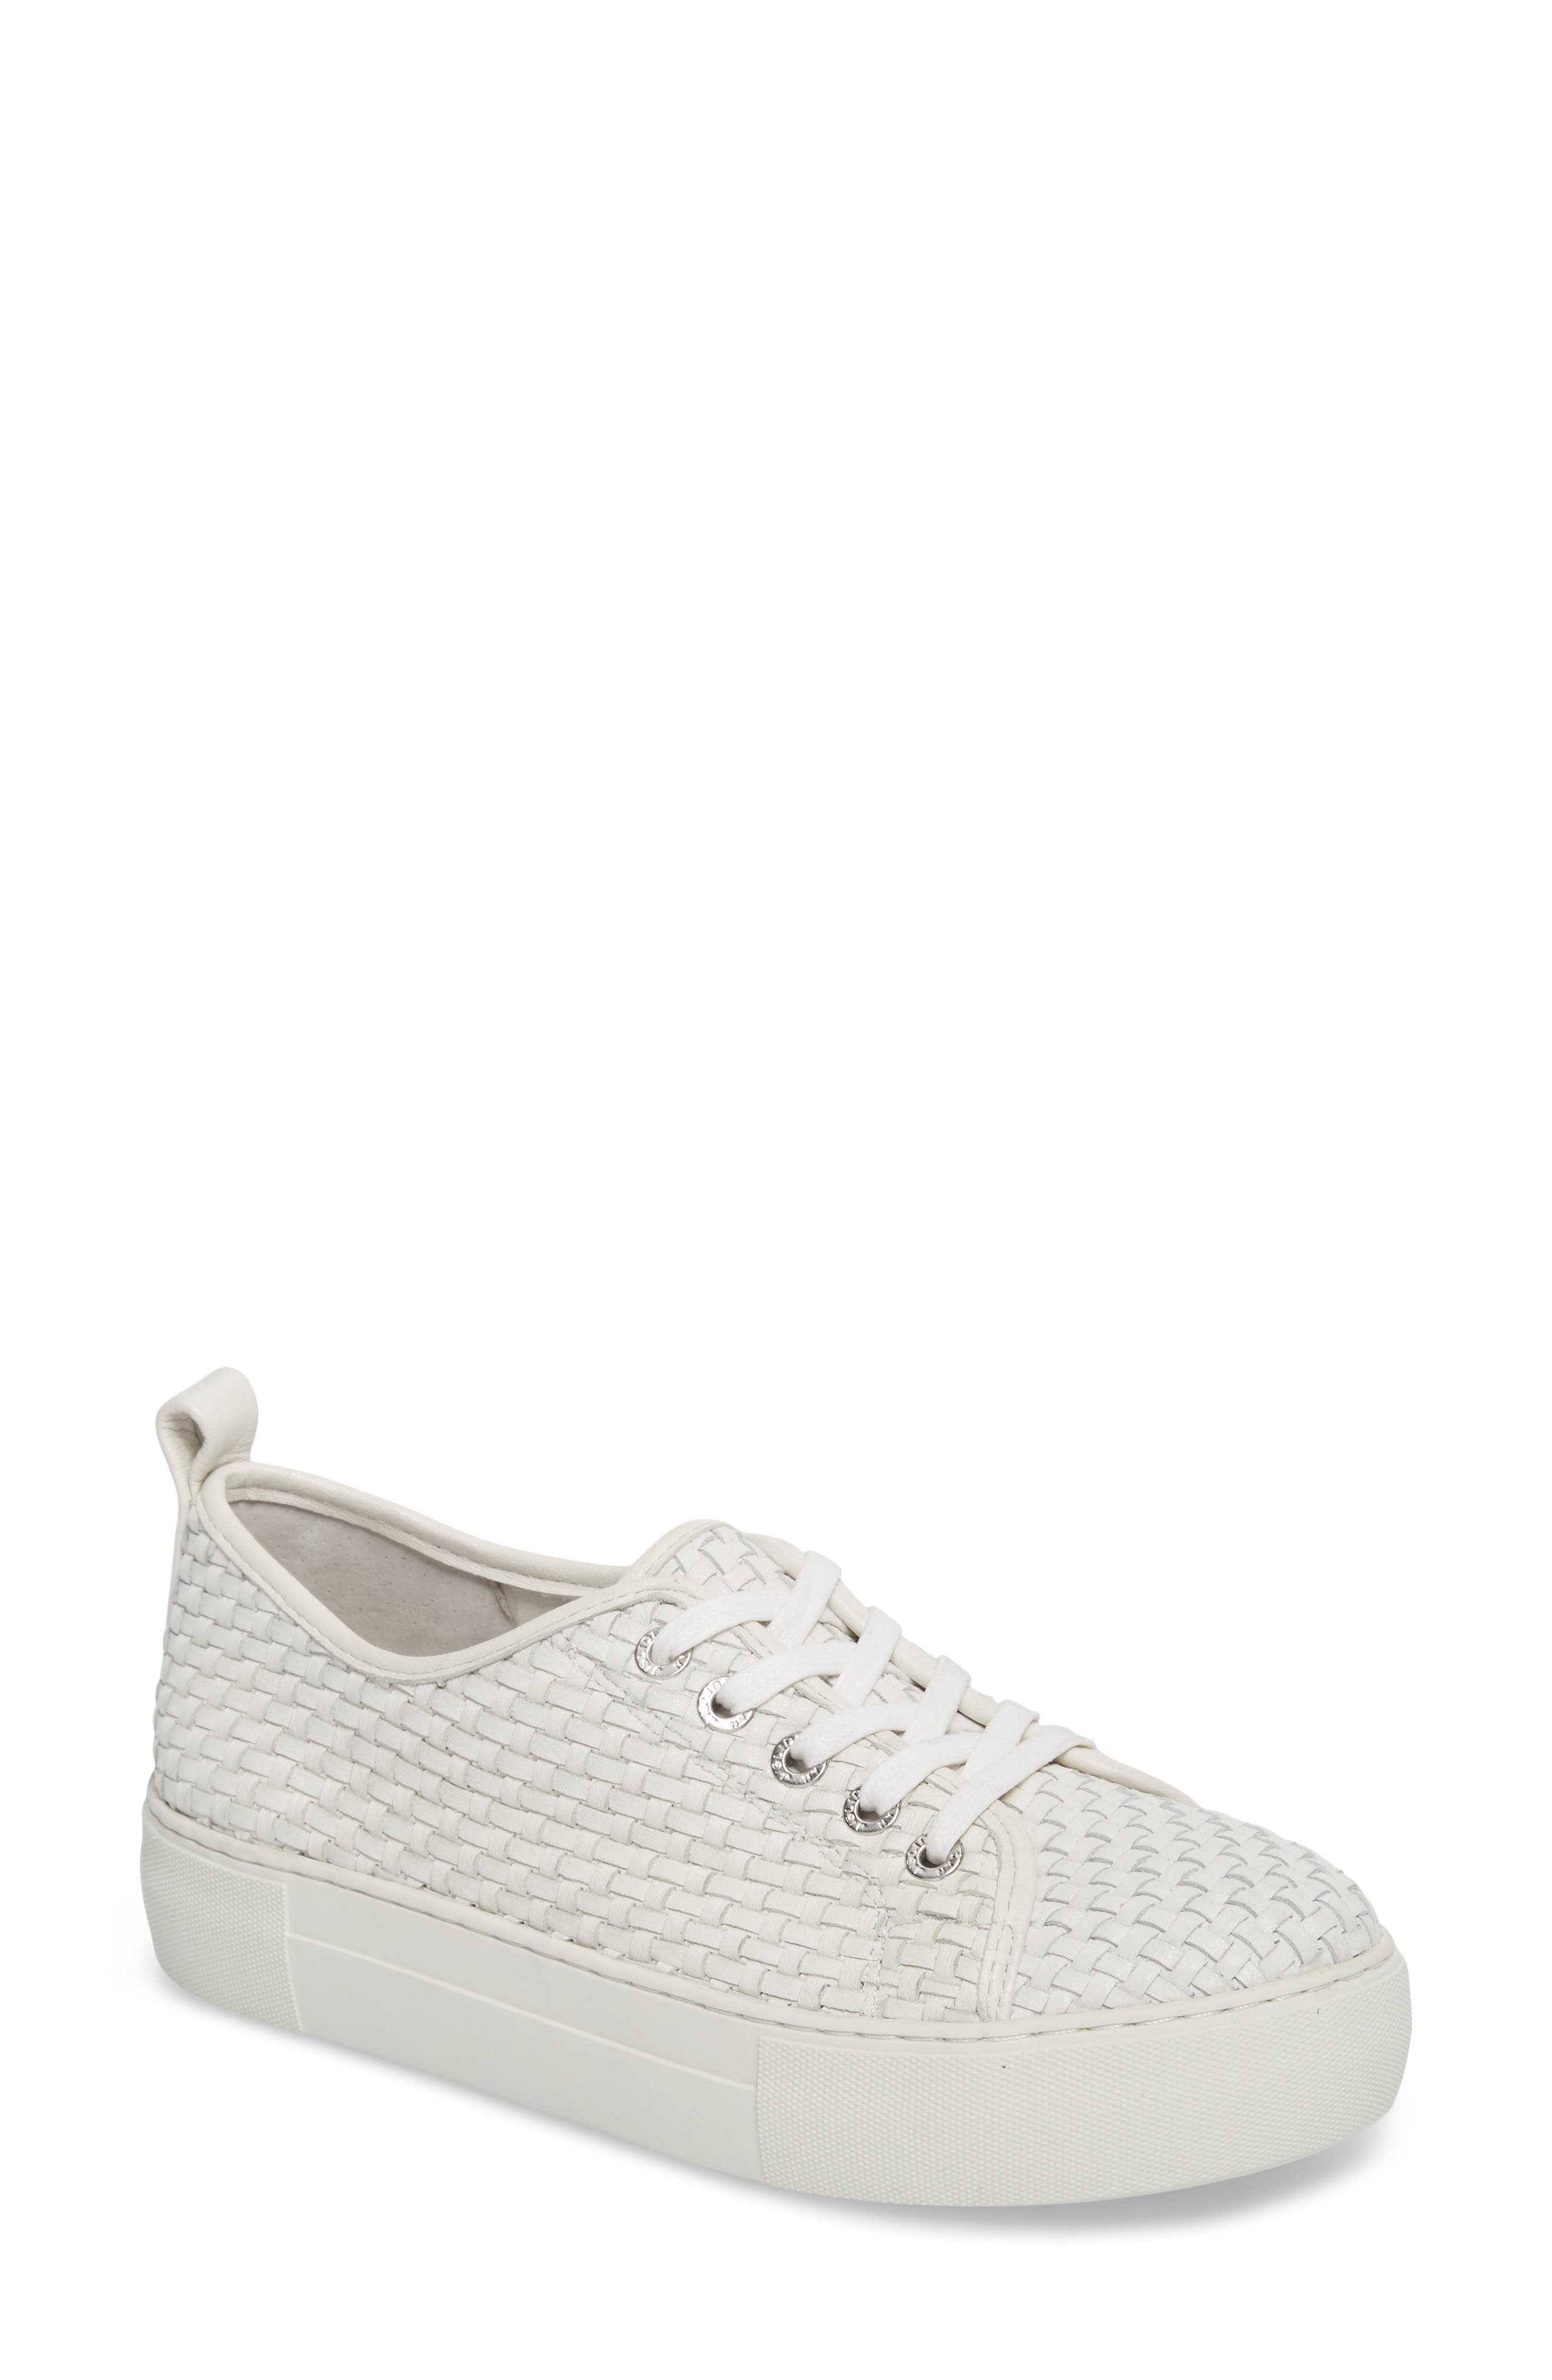 Artsy Woven Platform Sneaker,                         Main,                         color, White Leather